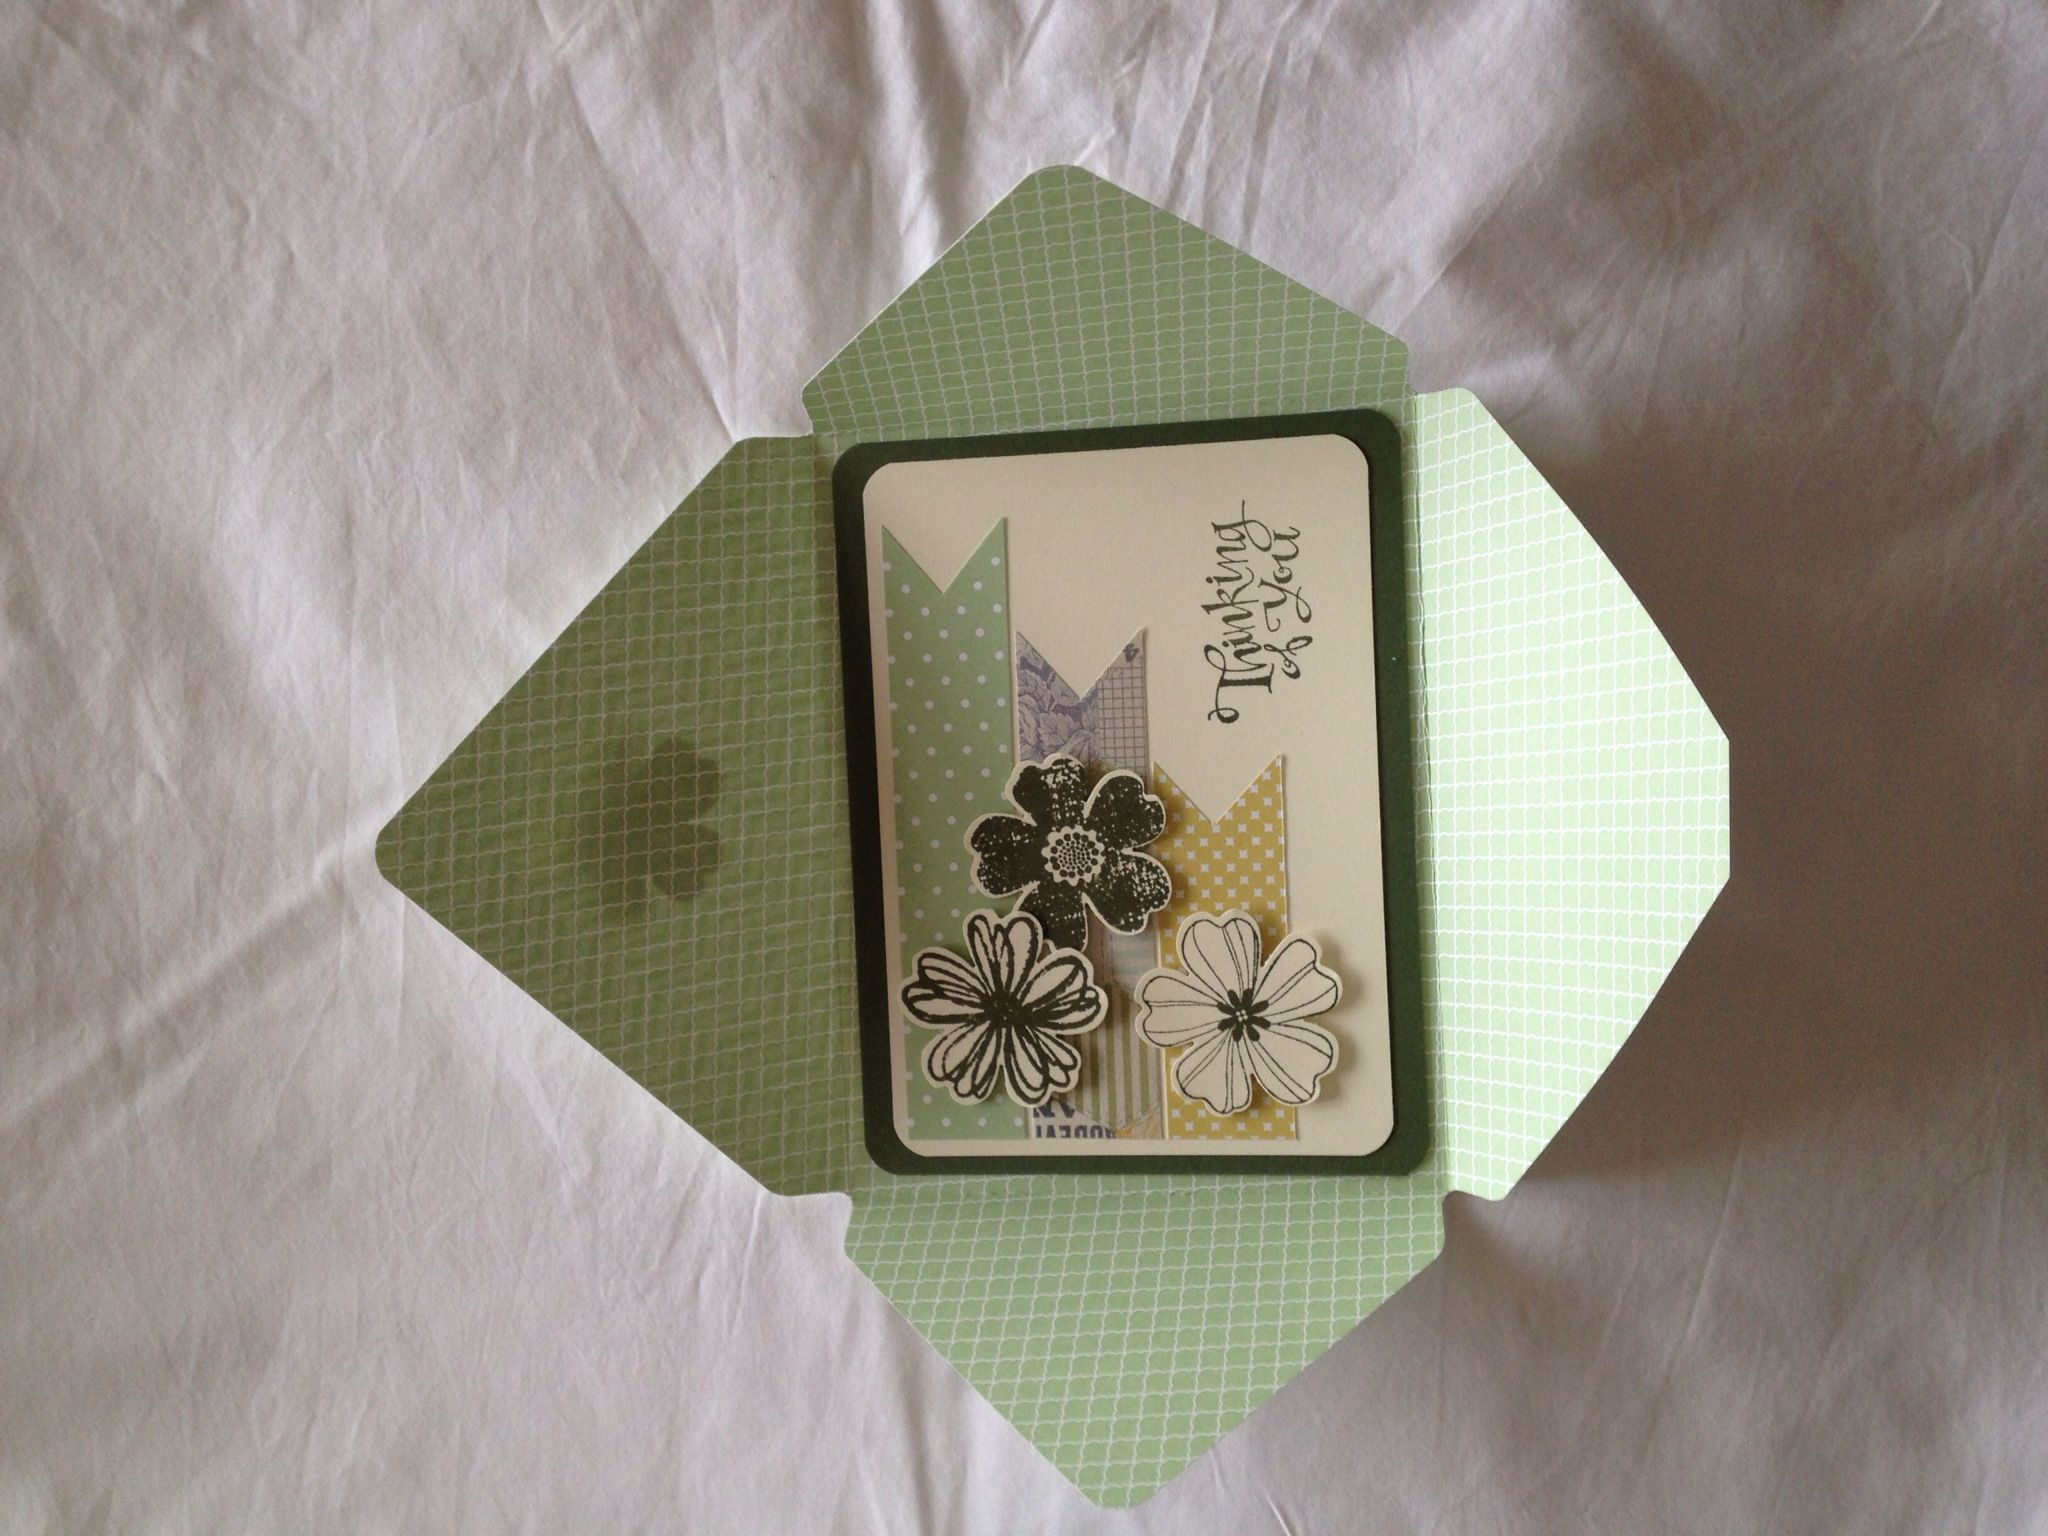 This is the card-in-an-envelope that we made at our Stampin' Up! Envelope punch board class. With Michelle Philips  Stampin' Up!